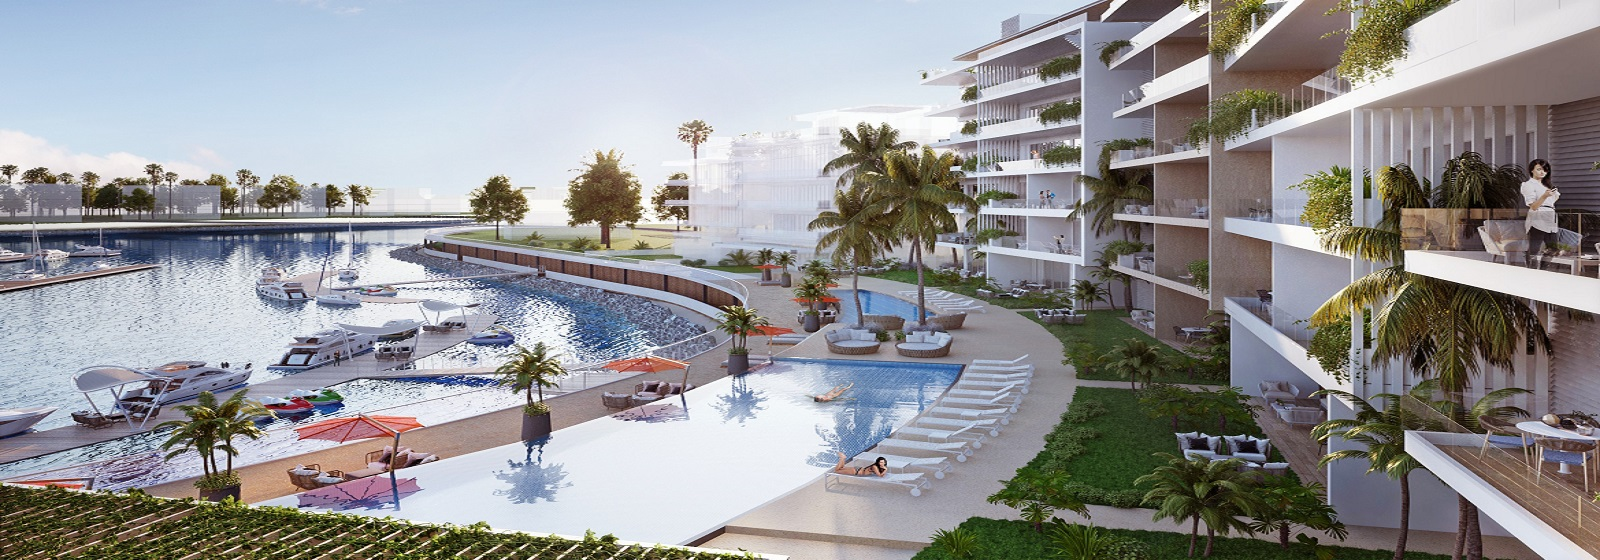 Beach Club Residences On Ocean Reef Islands Panama City, Panama